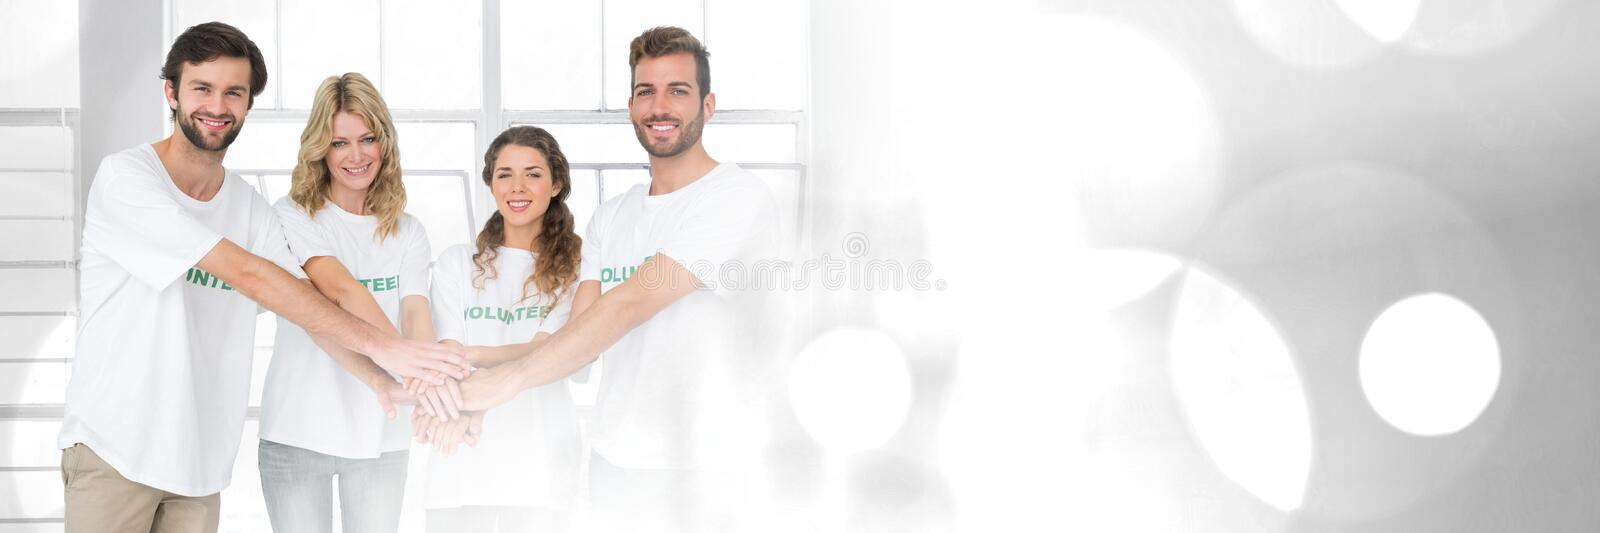 Teamwork transition with volunteers joining hands royalty free stock images